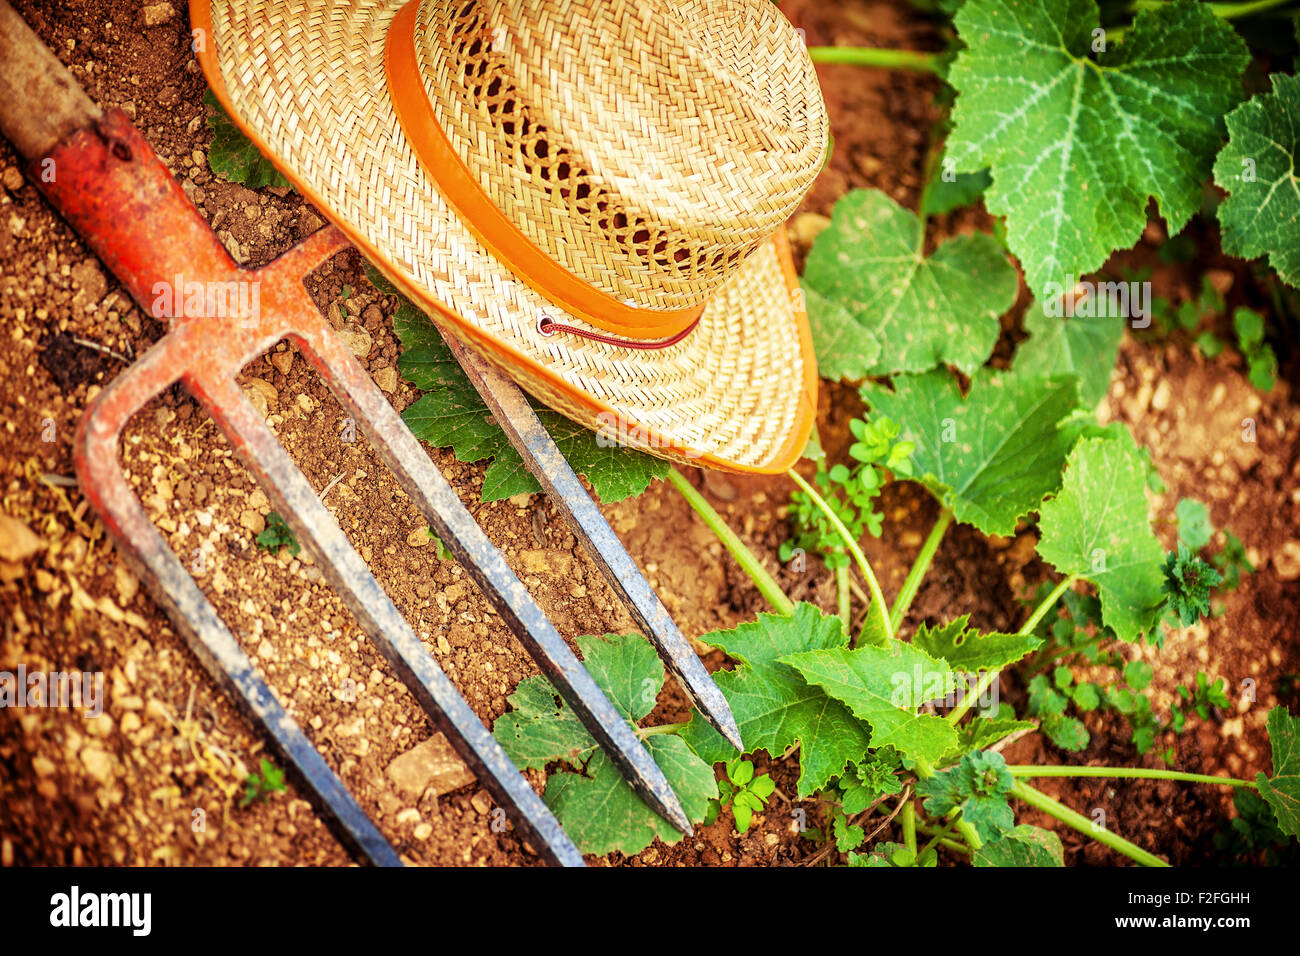 Farmer Tools In The Garden Pitchfork And Straw Hat Lying Down On